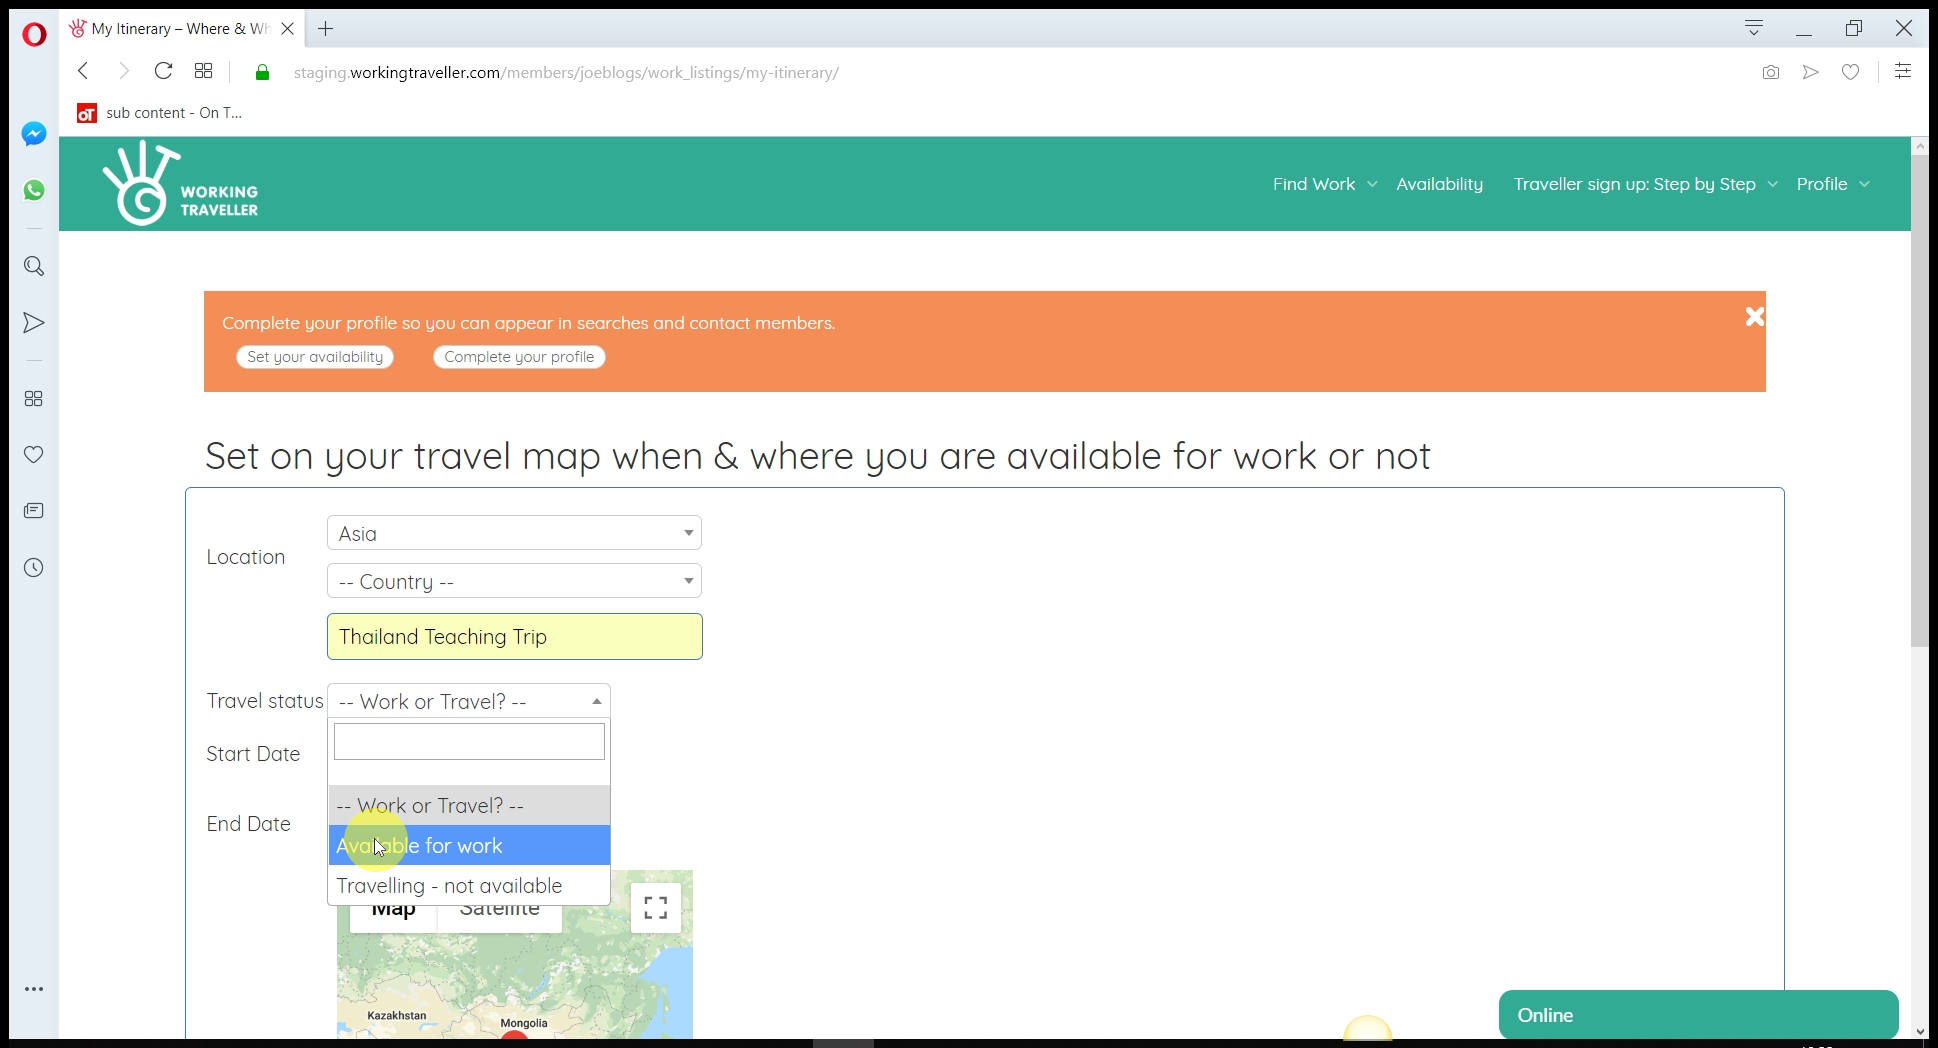 Avaible for work or not? Able to work select aviable, if  traveling / not want to work select Travelling - your route map shows where you will be going / when you are avaible to hosts. More info you give them, more they see you as organised and reliable.